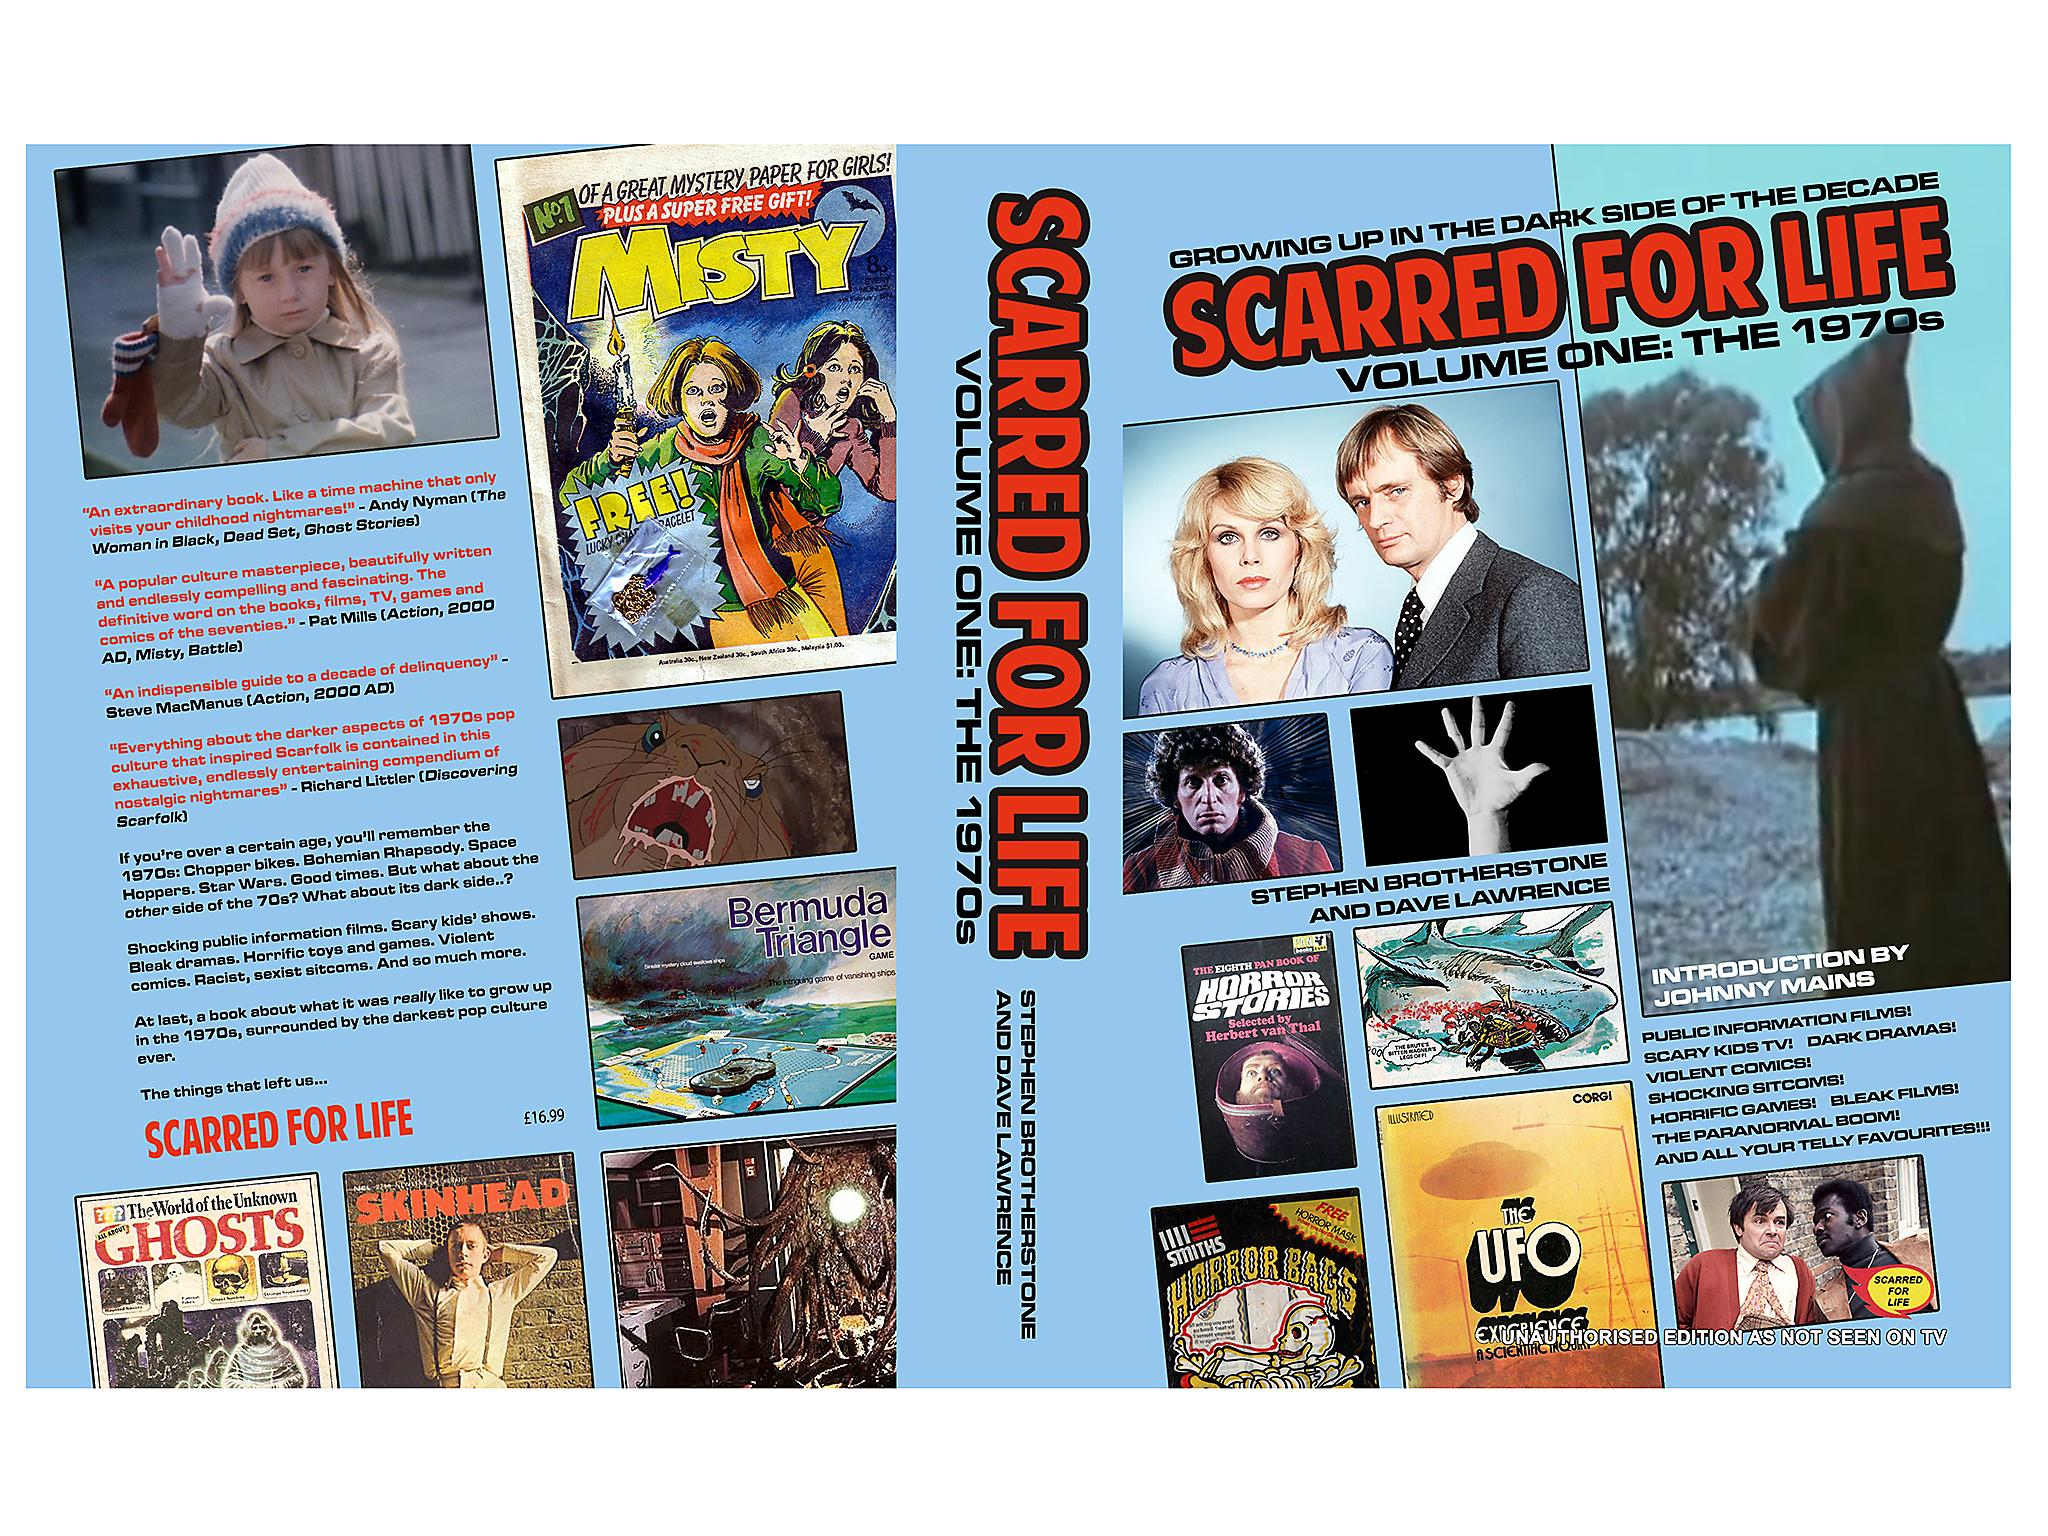 Scarred for life: How the pop culture of the Seventies had such a